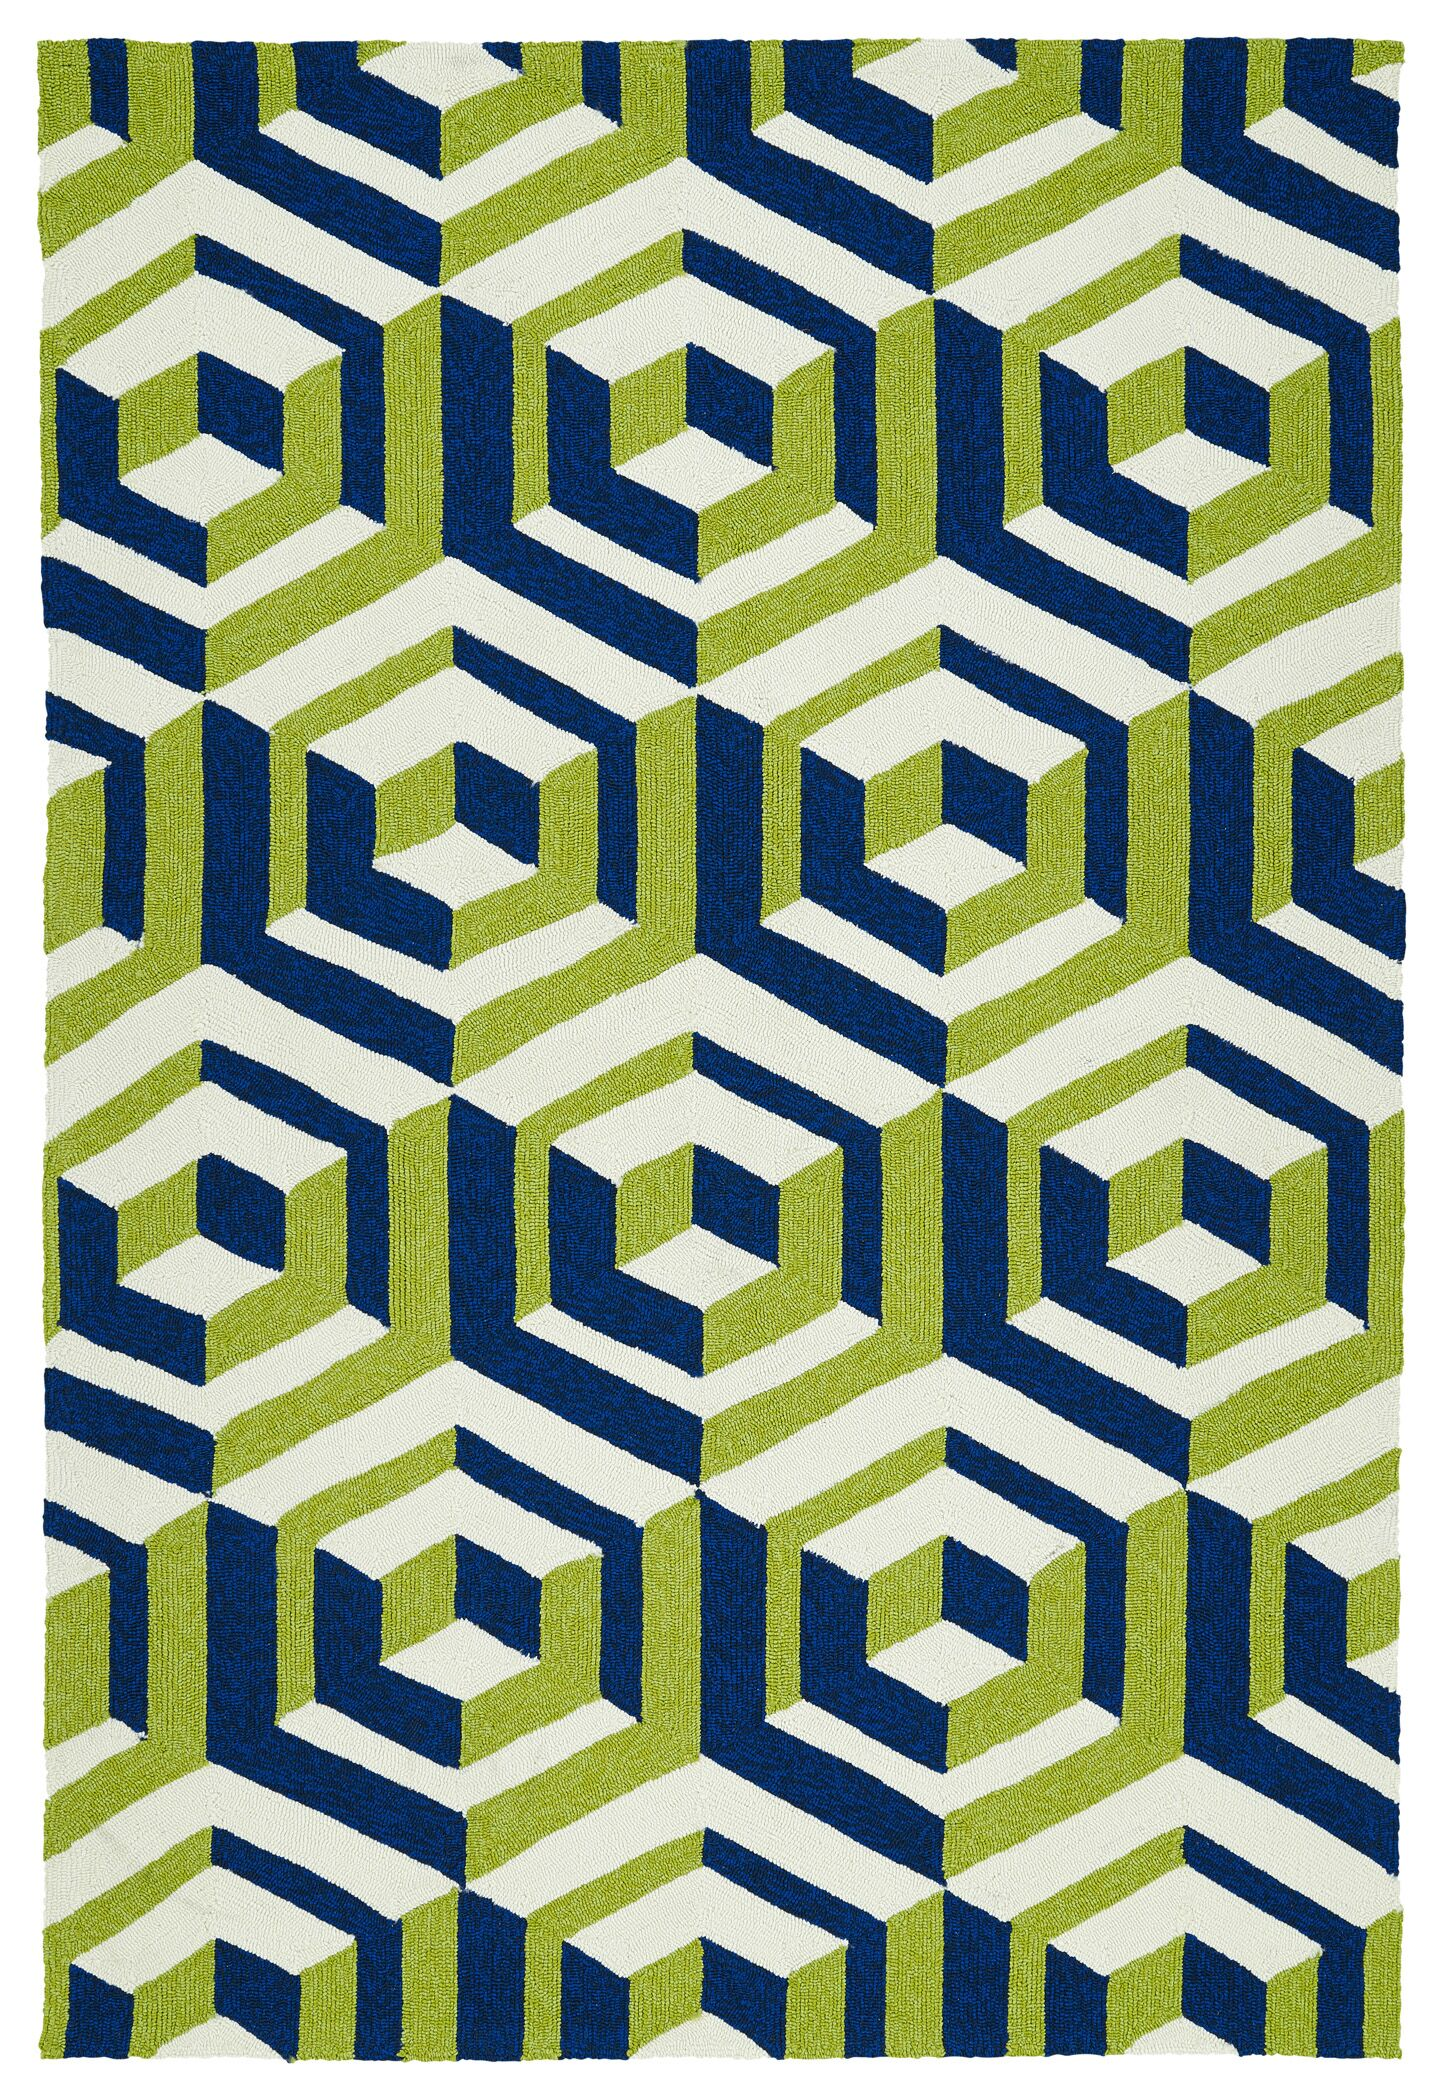 Doylestown Navy/Green Indoor/Outdoor Area Rug Rug Size: Rectangle 5' x 7'6